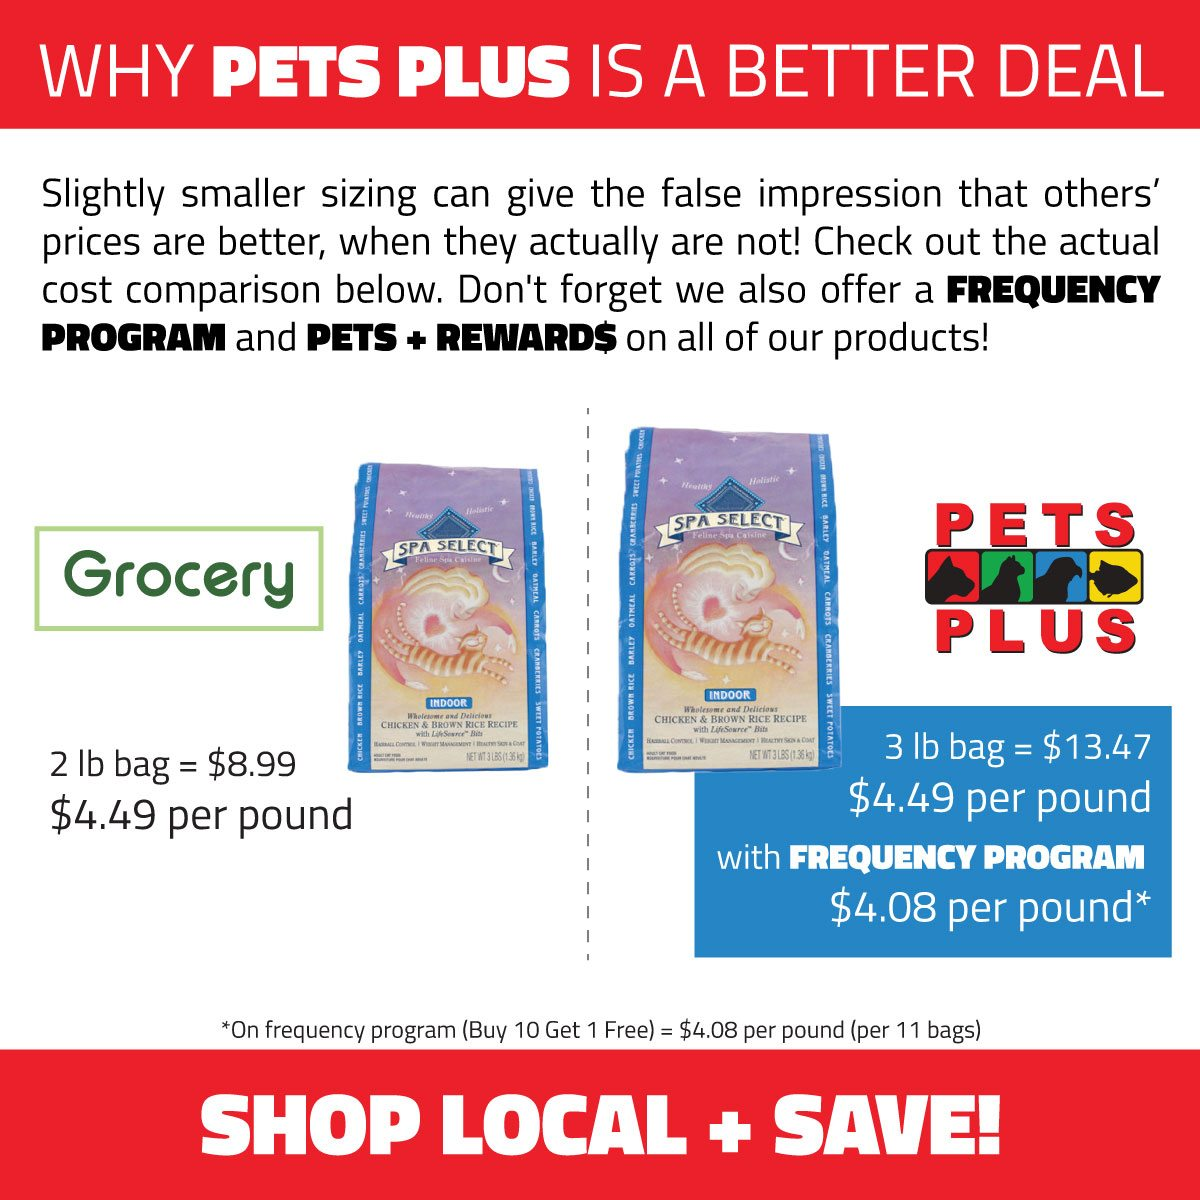 Pets Plus is a Better Deal!